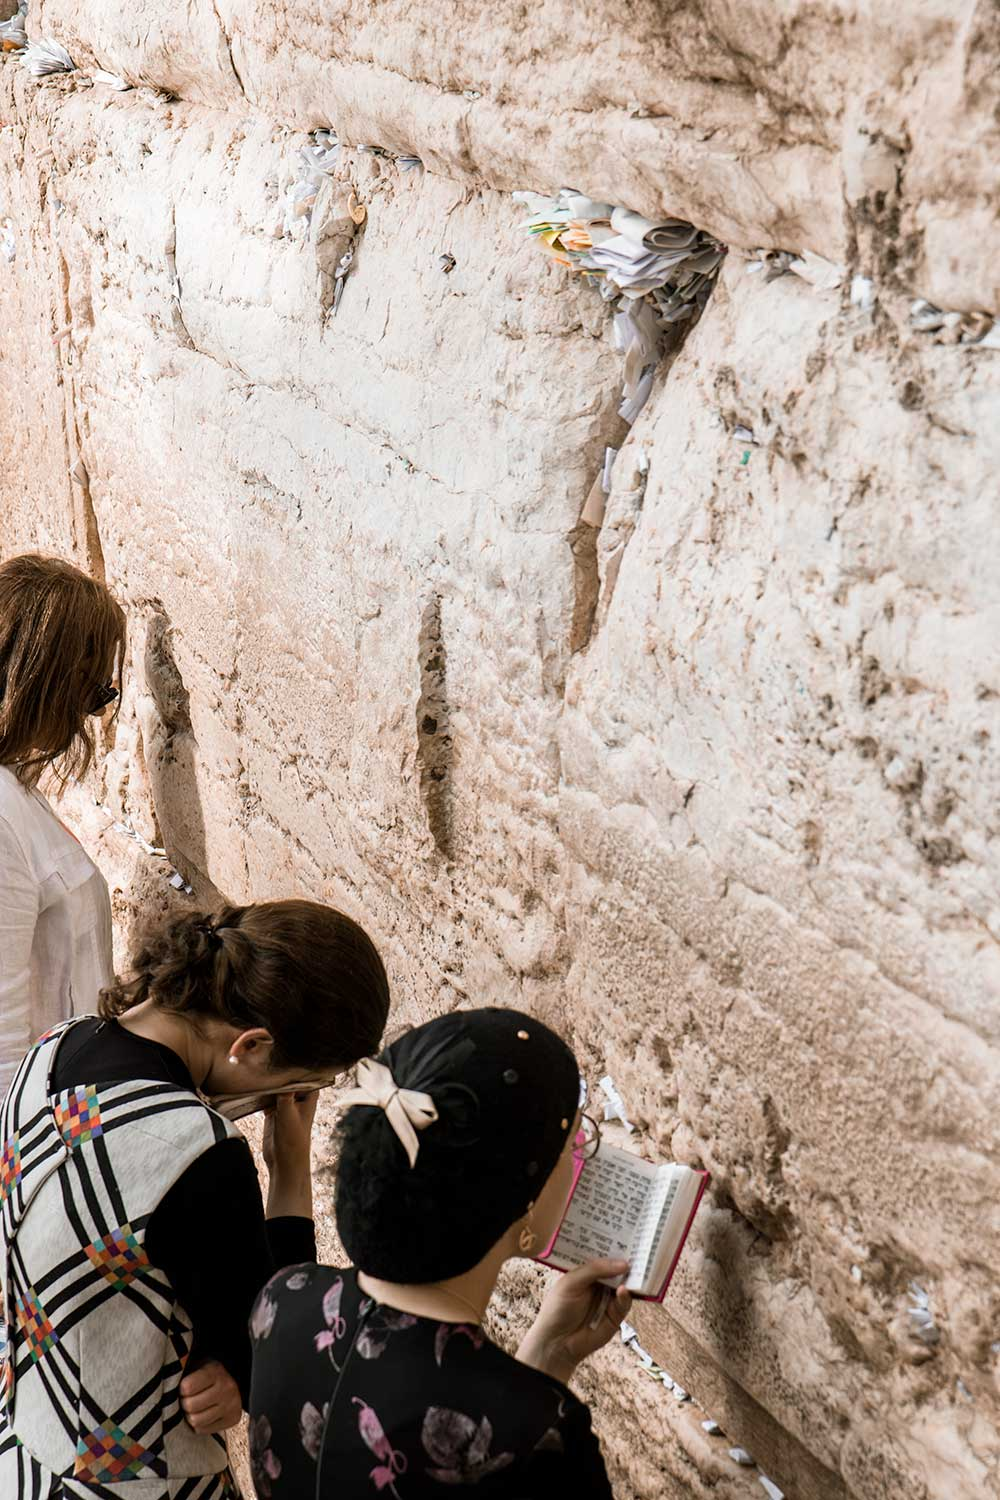 Orthodox Jews praying at the Wailing Wall on our two days in Jerusalem